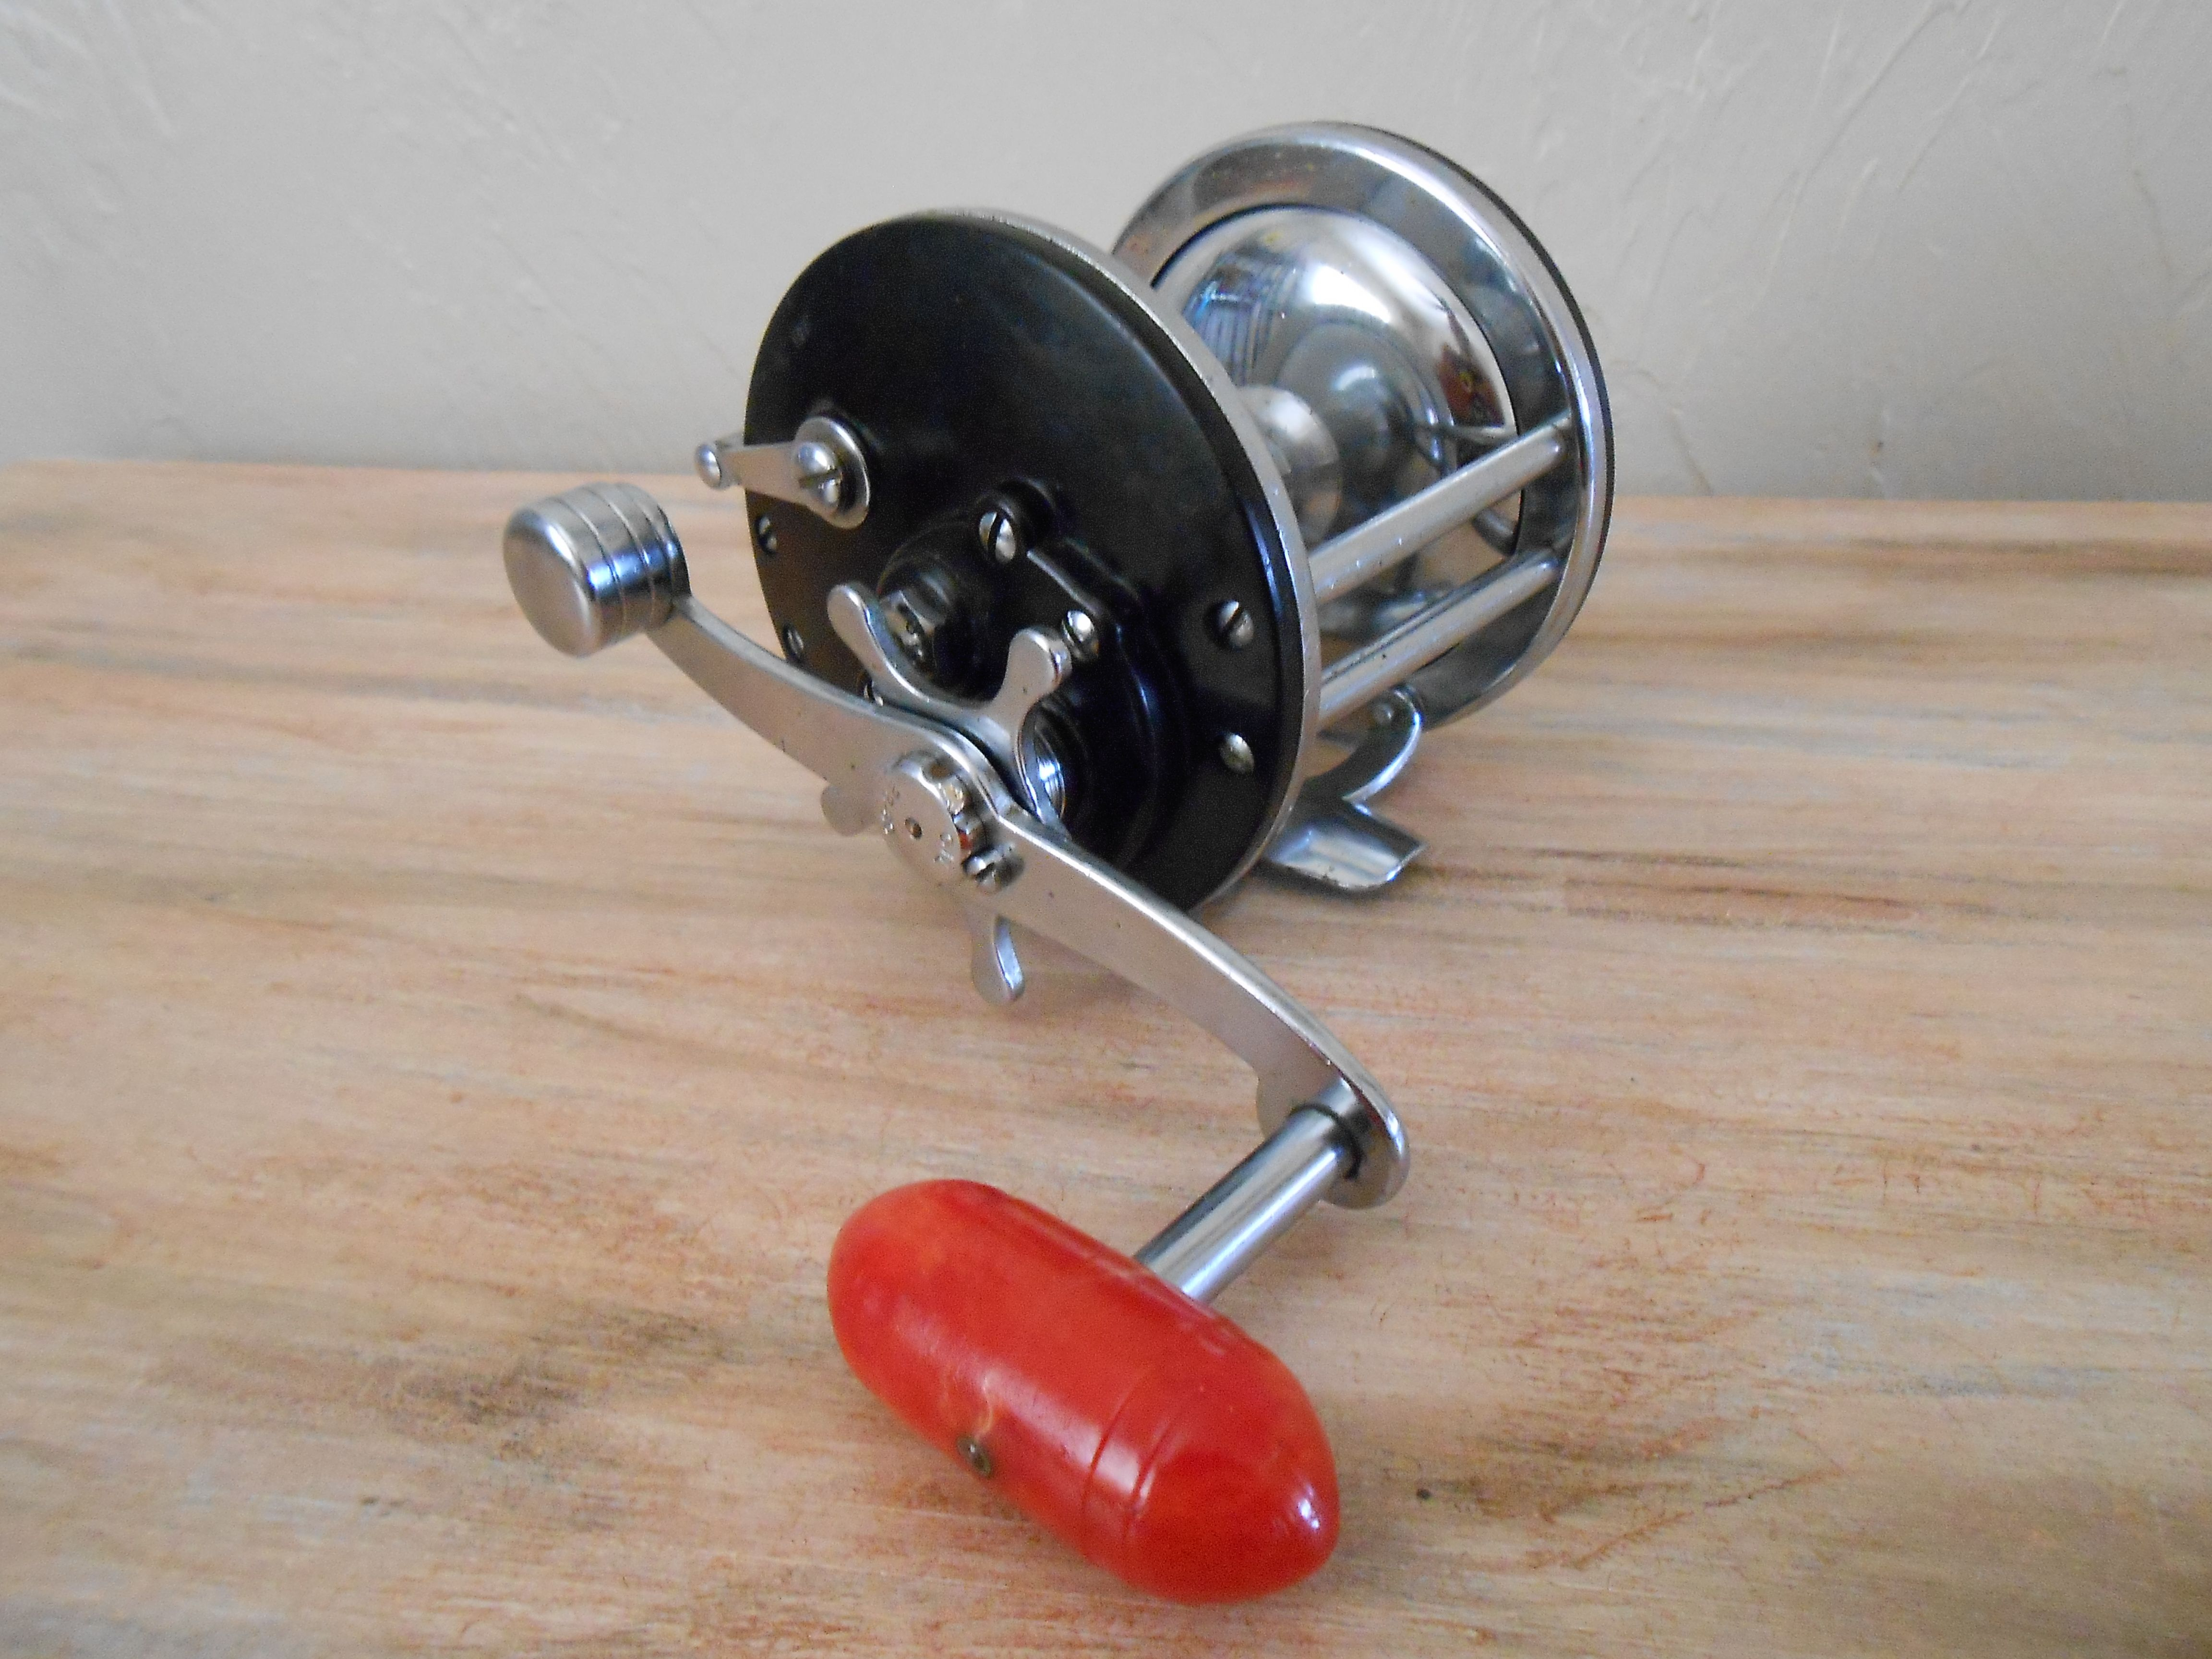 6161dc2217c Penn Long Beach No.65 Just Finished Cleaning, Oil and Greased. Fishing Reels